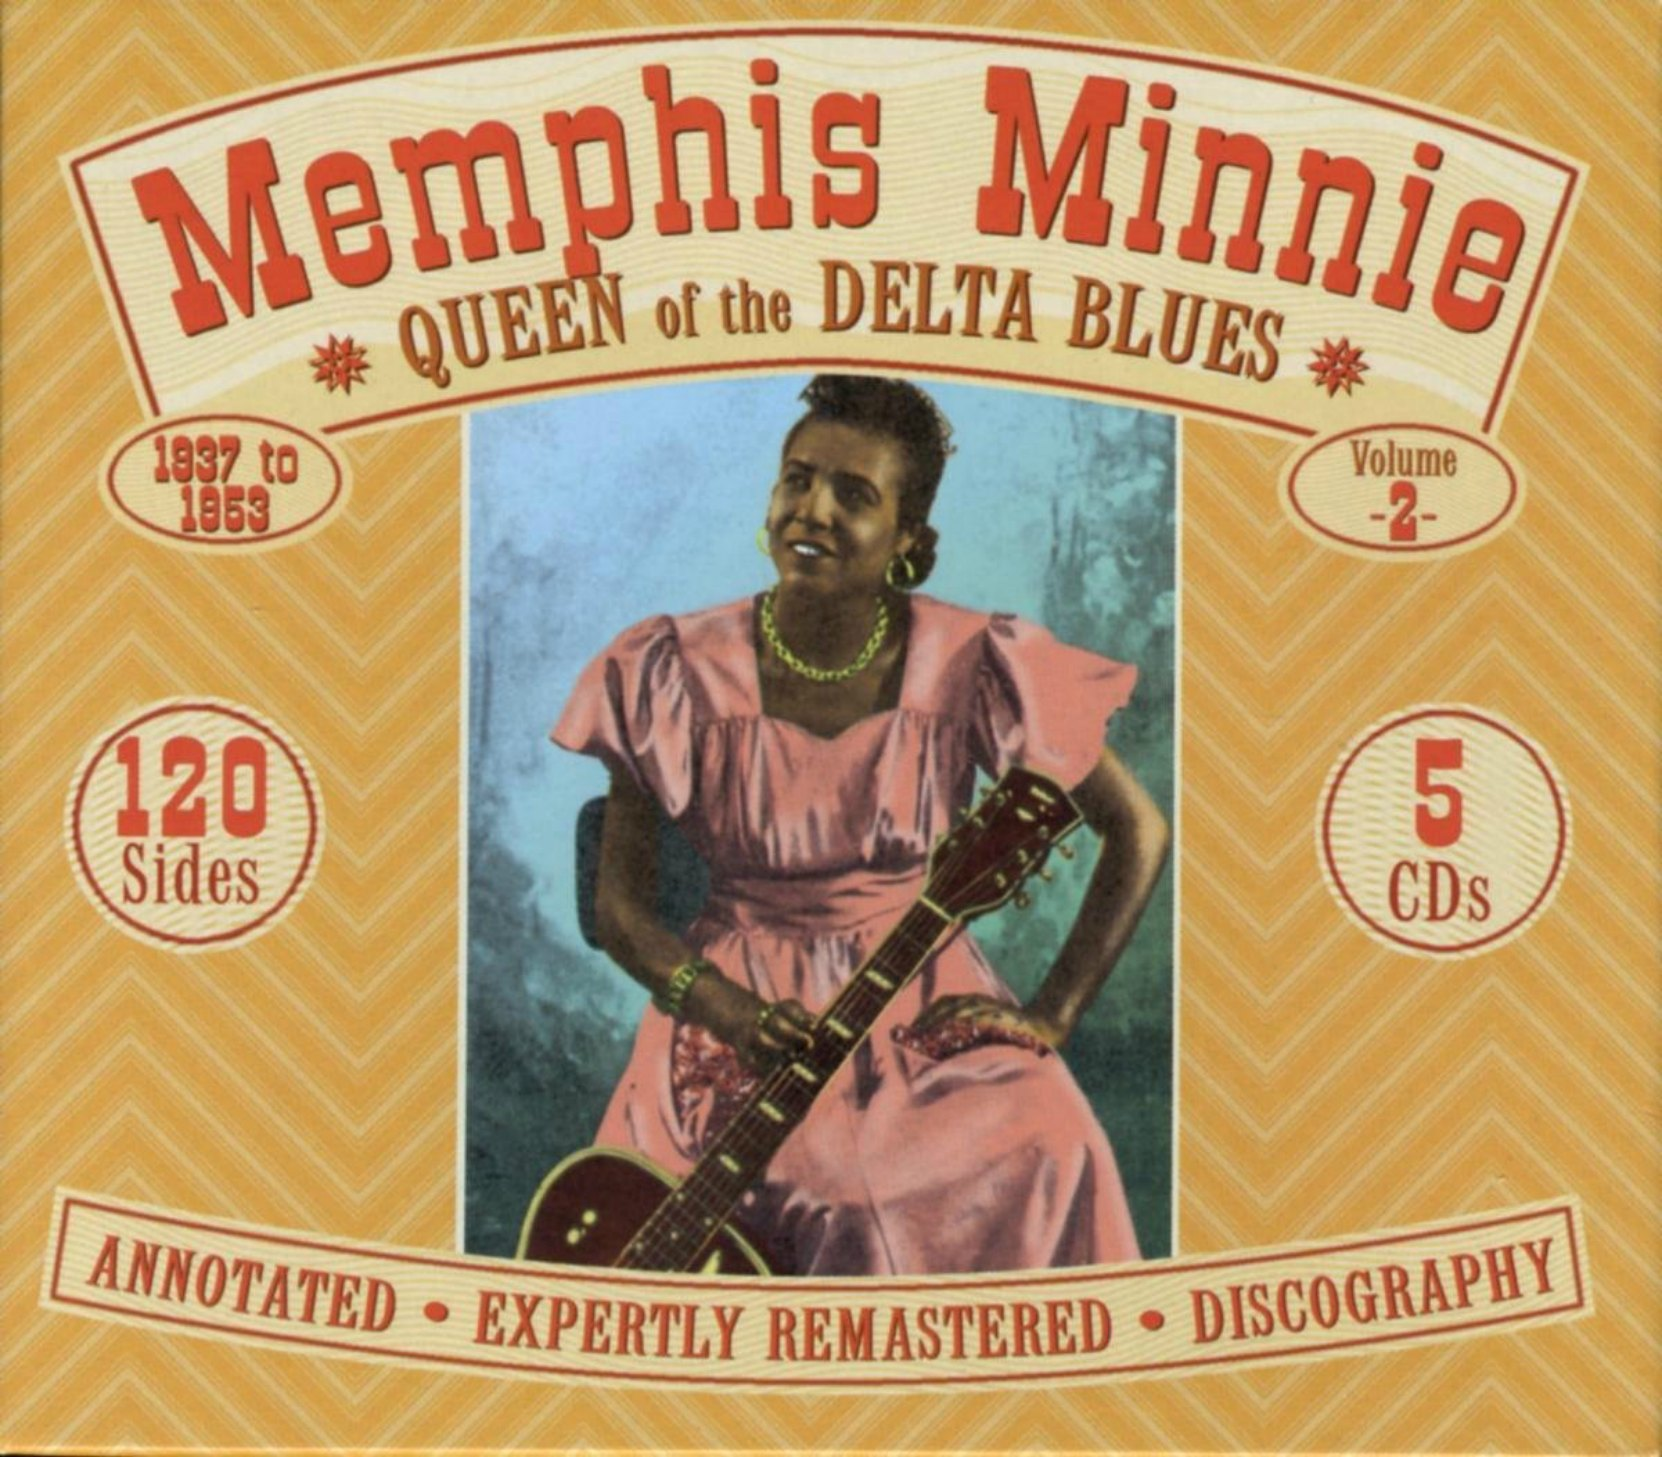 CD cover, Memphis Minnie - Queen of the Delta Blues 1937-1953, 5 CD set on JSP Records. Volume 2 of a 2 volume collection of memphis Minnie recordings.